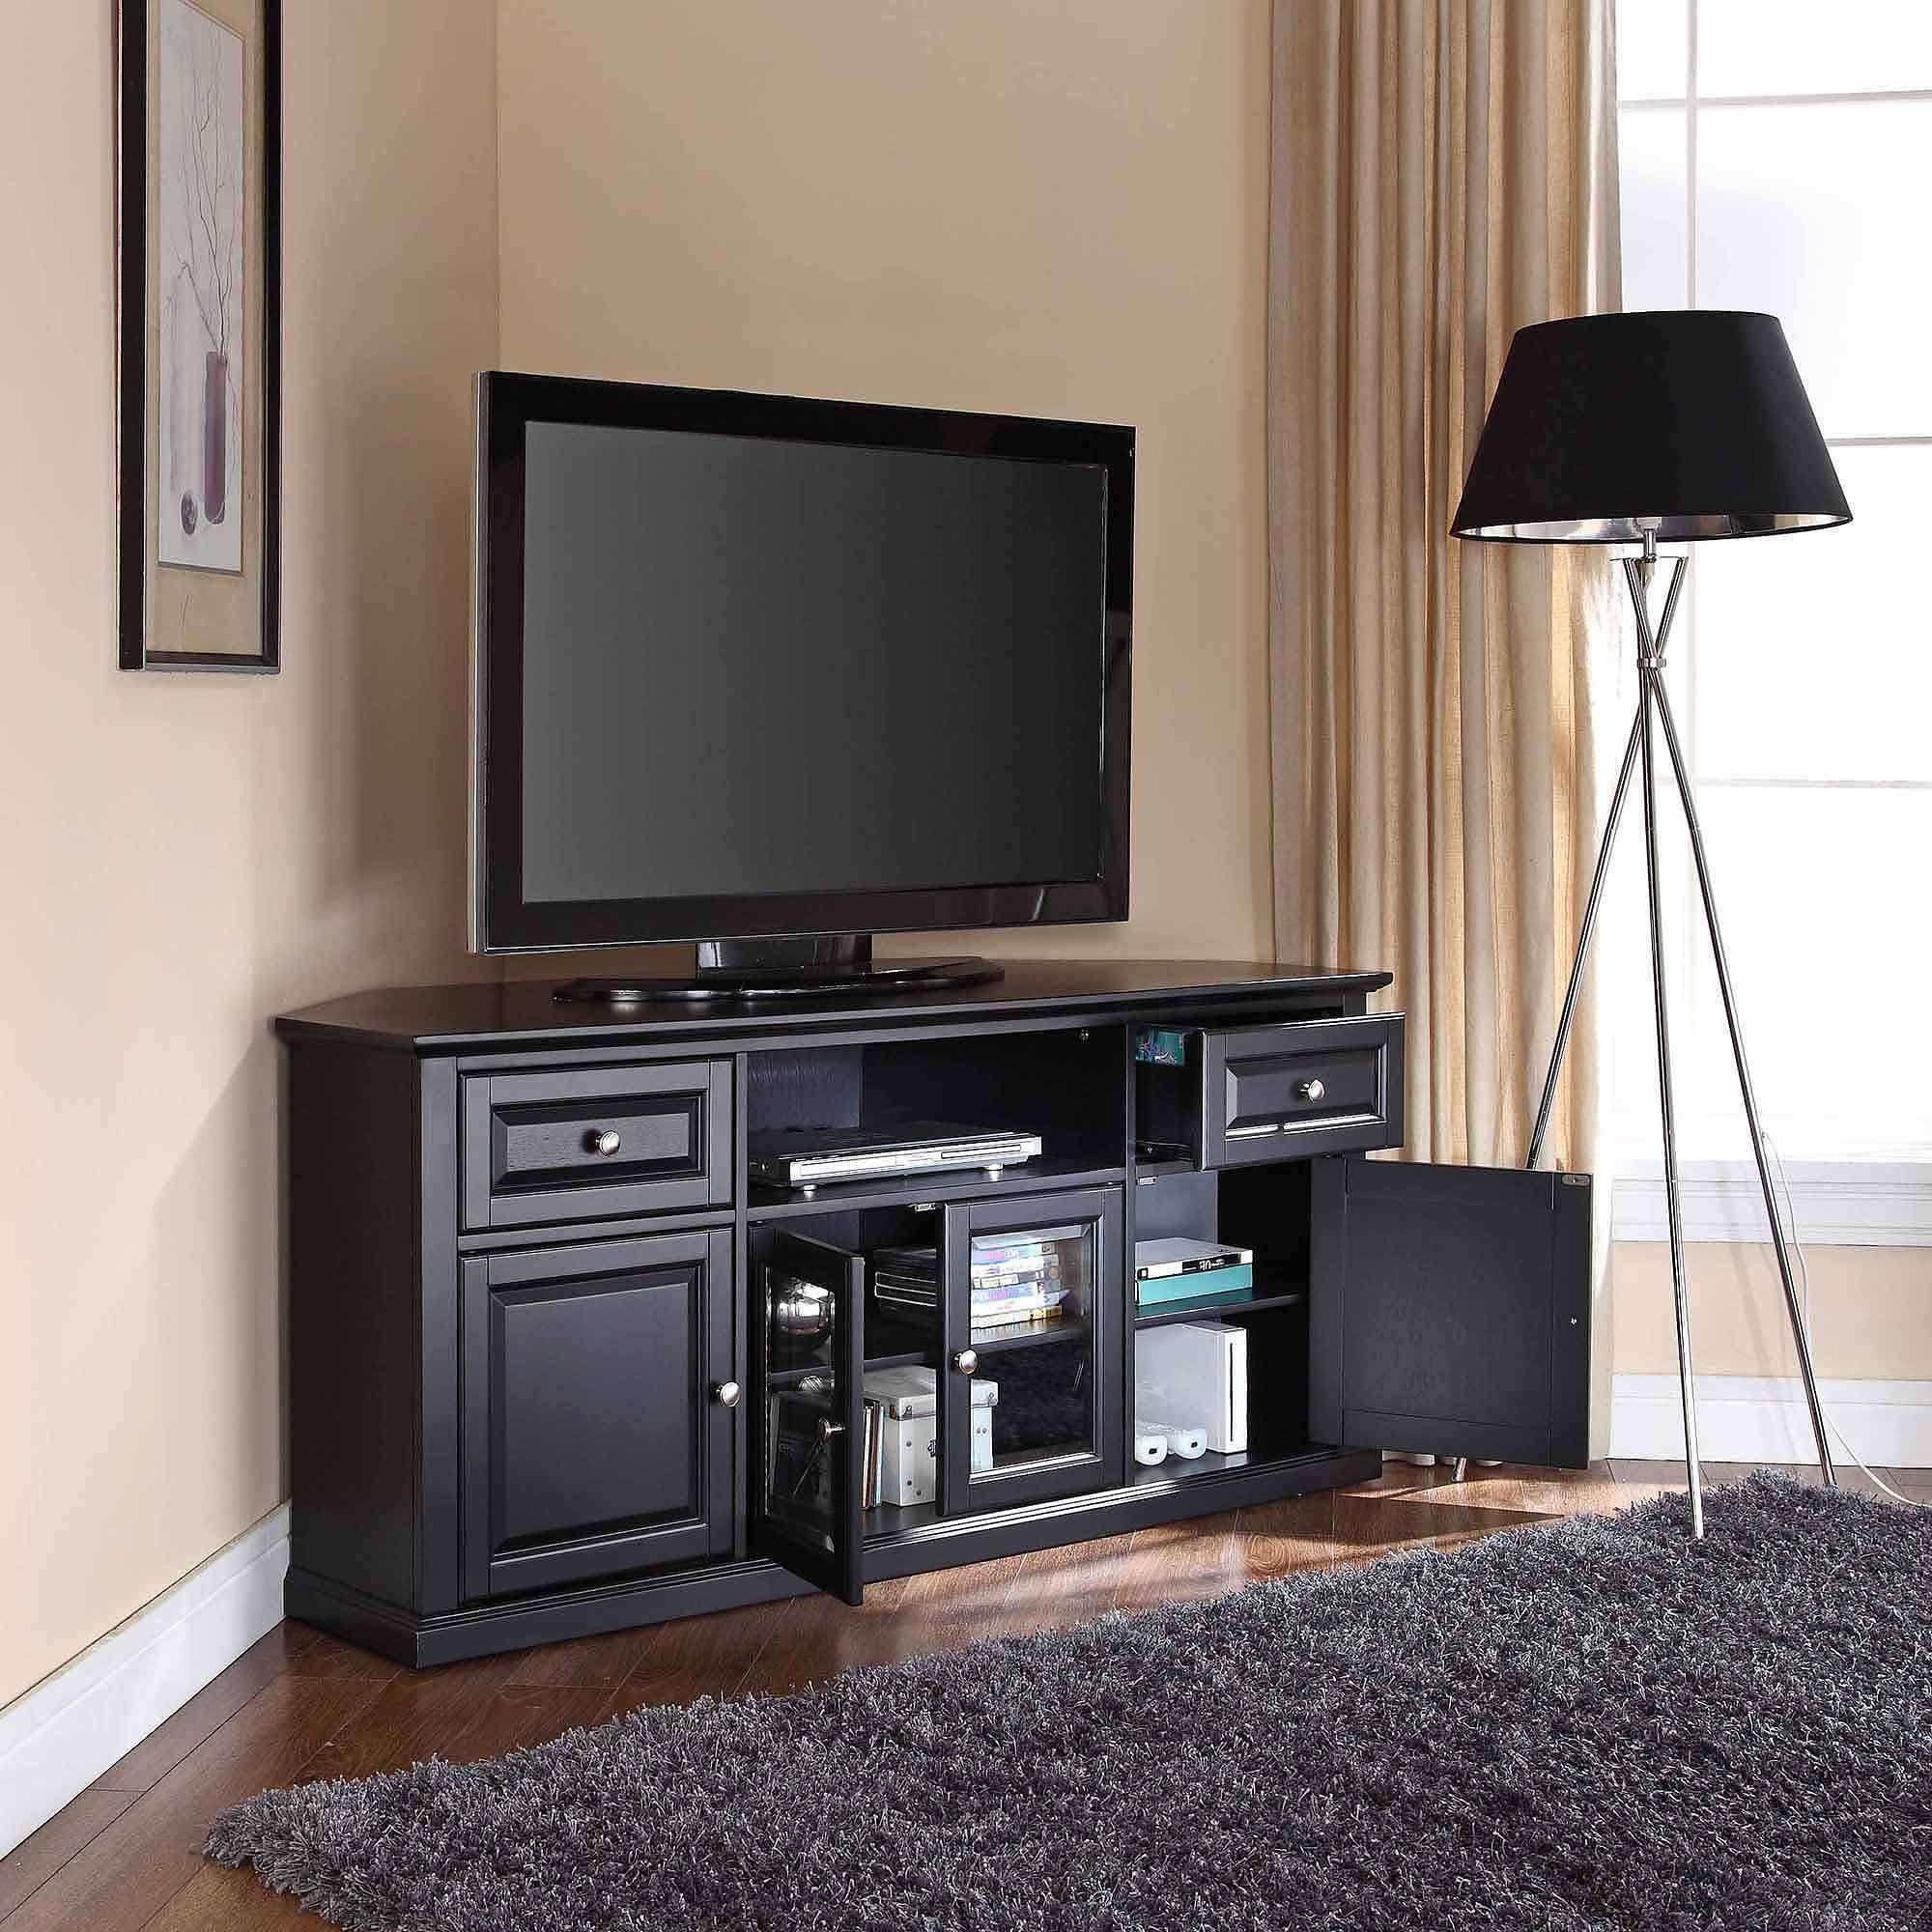 """Crosley Furniture Corner Tv Stand For Tvs Up To 60"""" – Walmart In Corner 55 Inch Tv Stands (View 4 of 15)"""